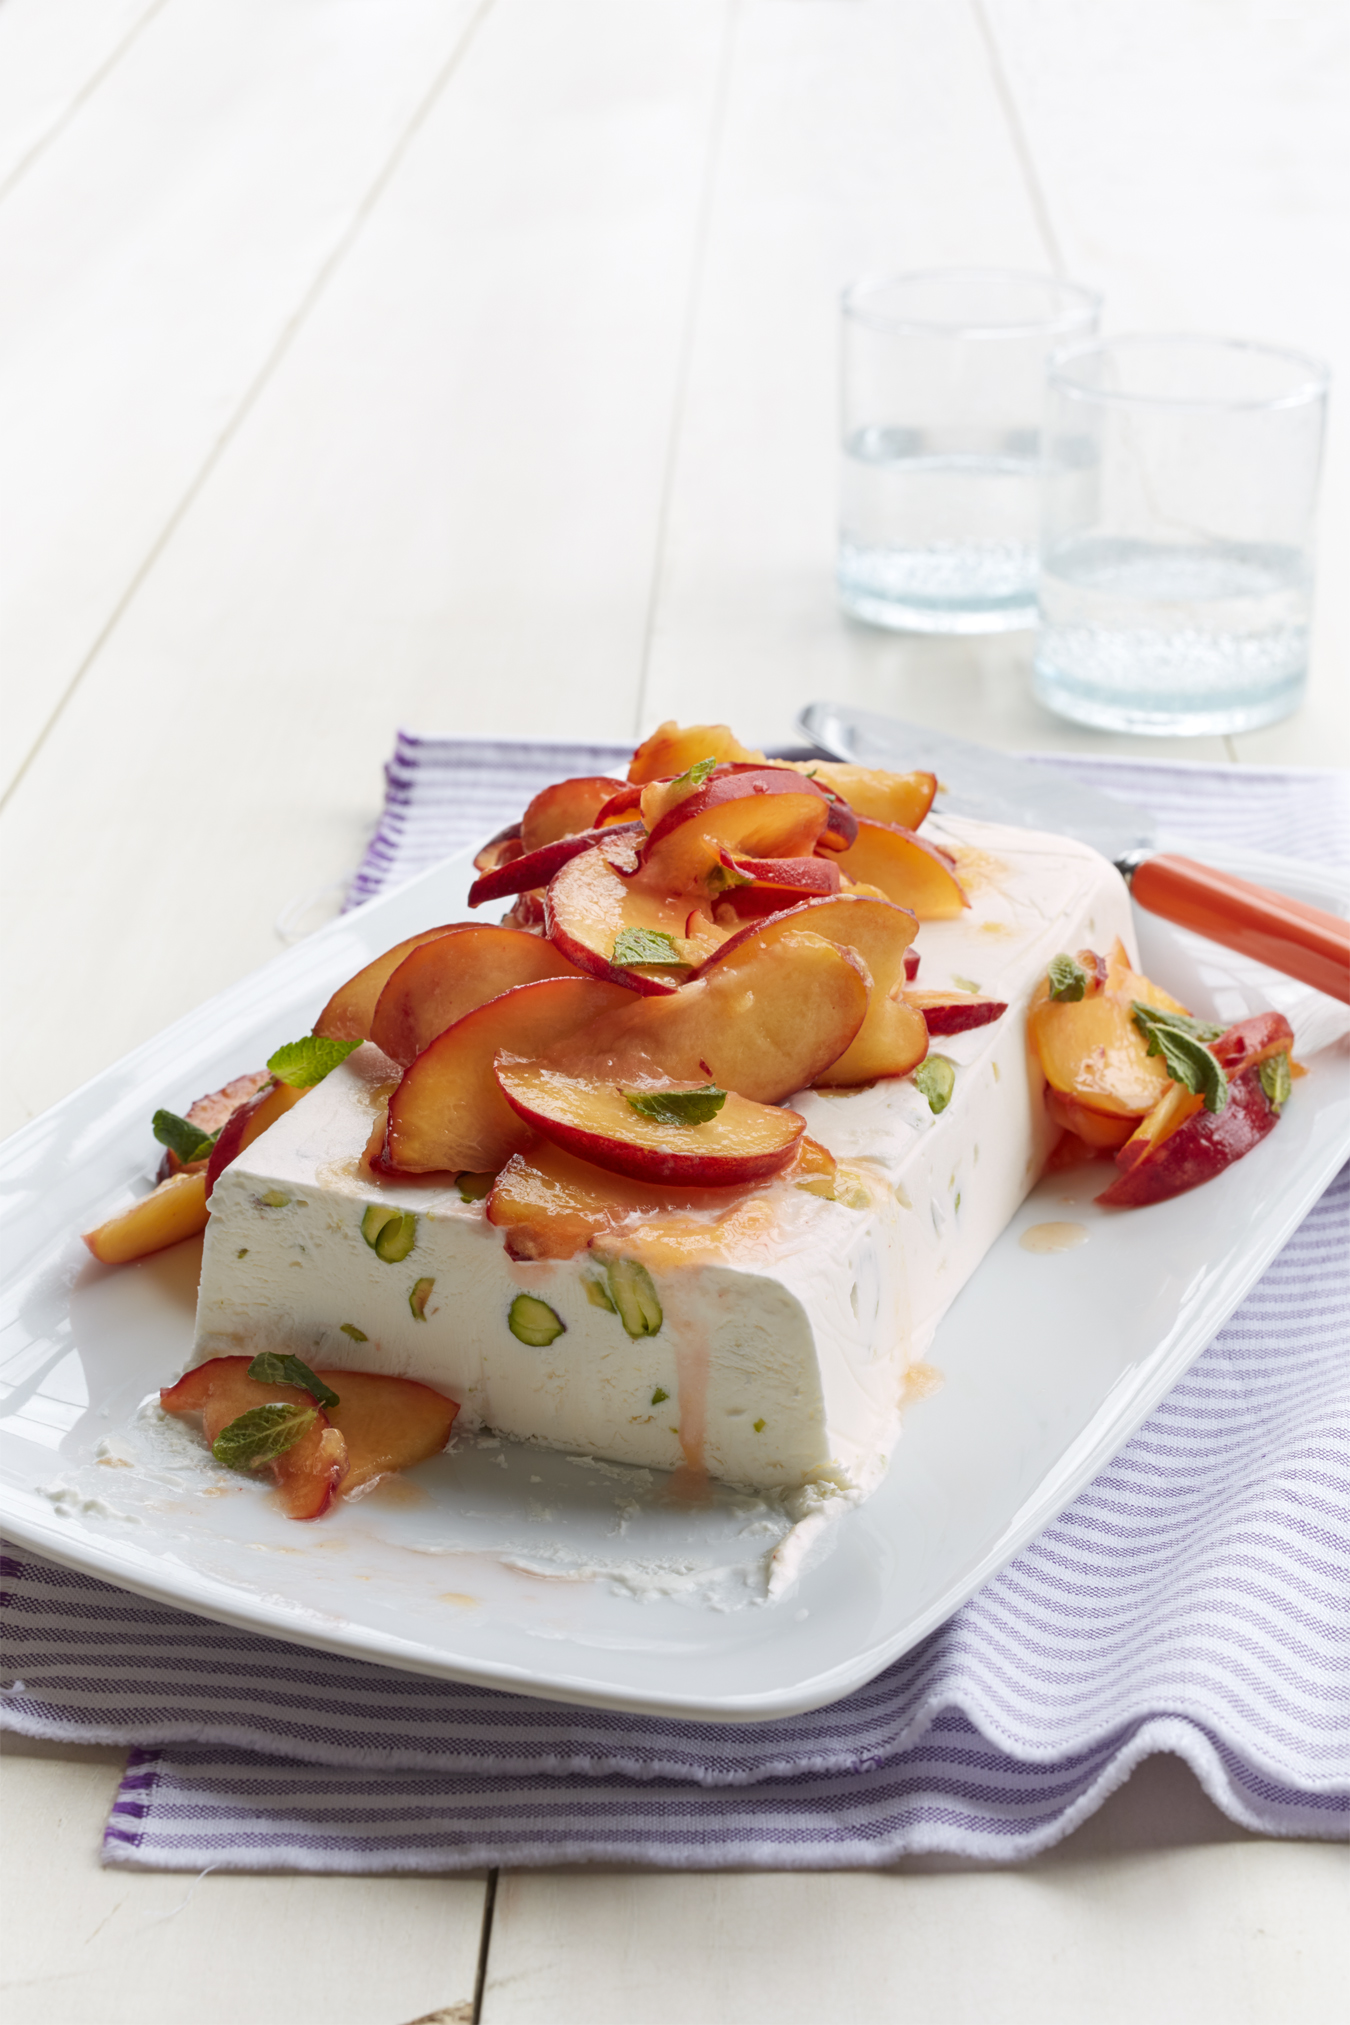 Best Semifreddo with Honeyed Peaches Recipe - How To Make Semifreddo ...